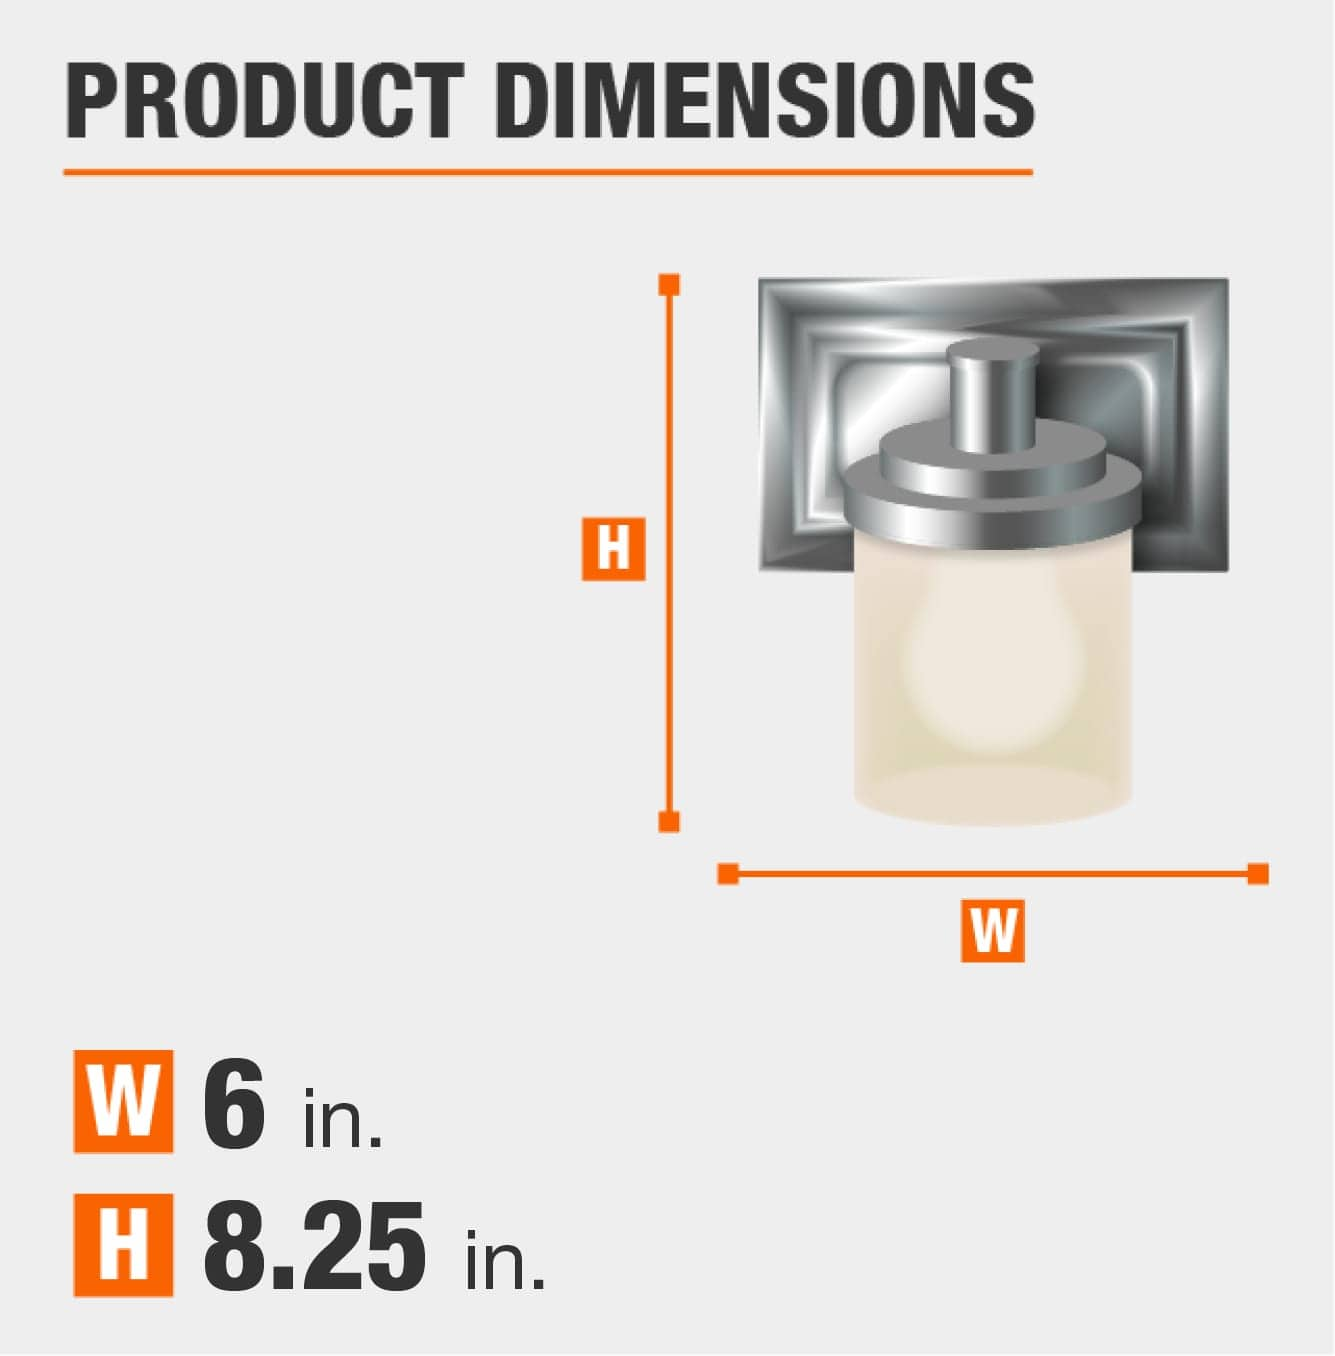 product dimensions are 8.25 inches by 6 inches